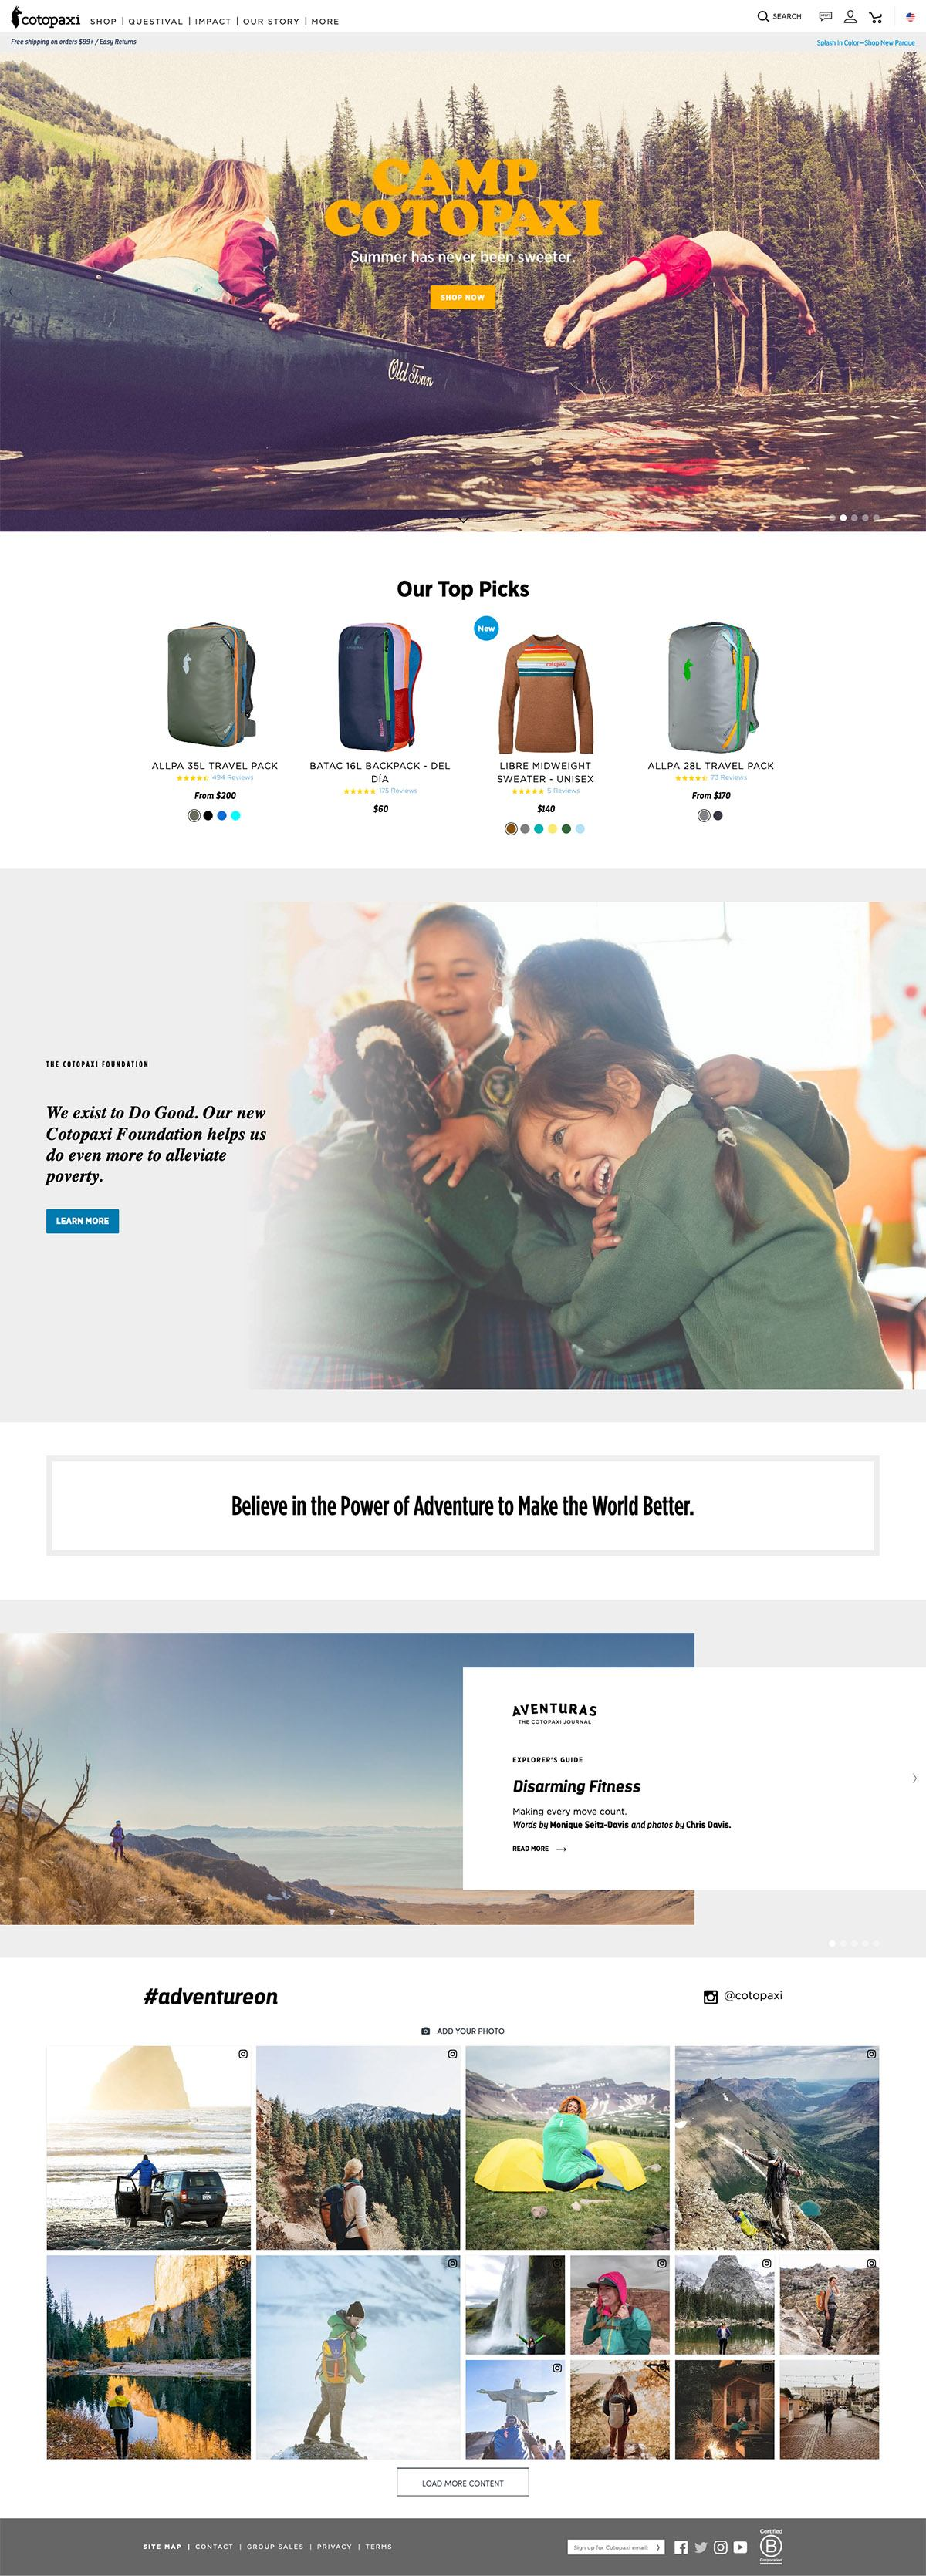 eCommerce website: Cotopaxi